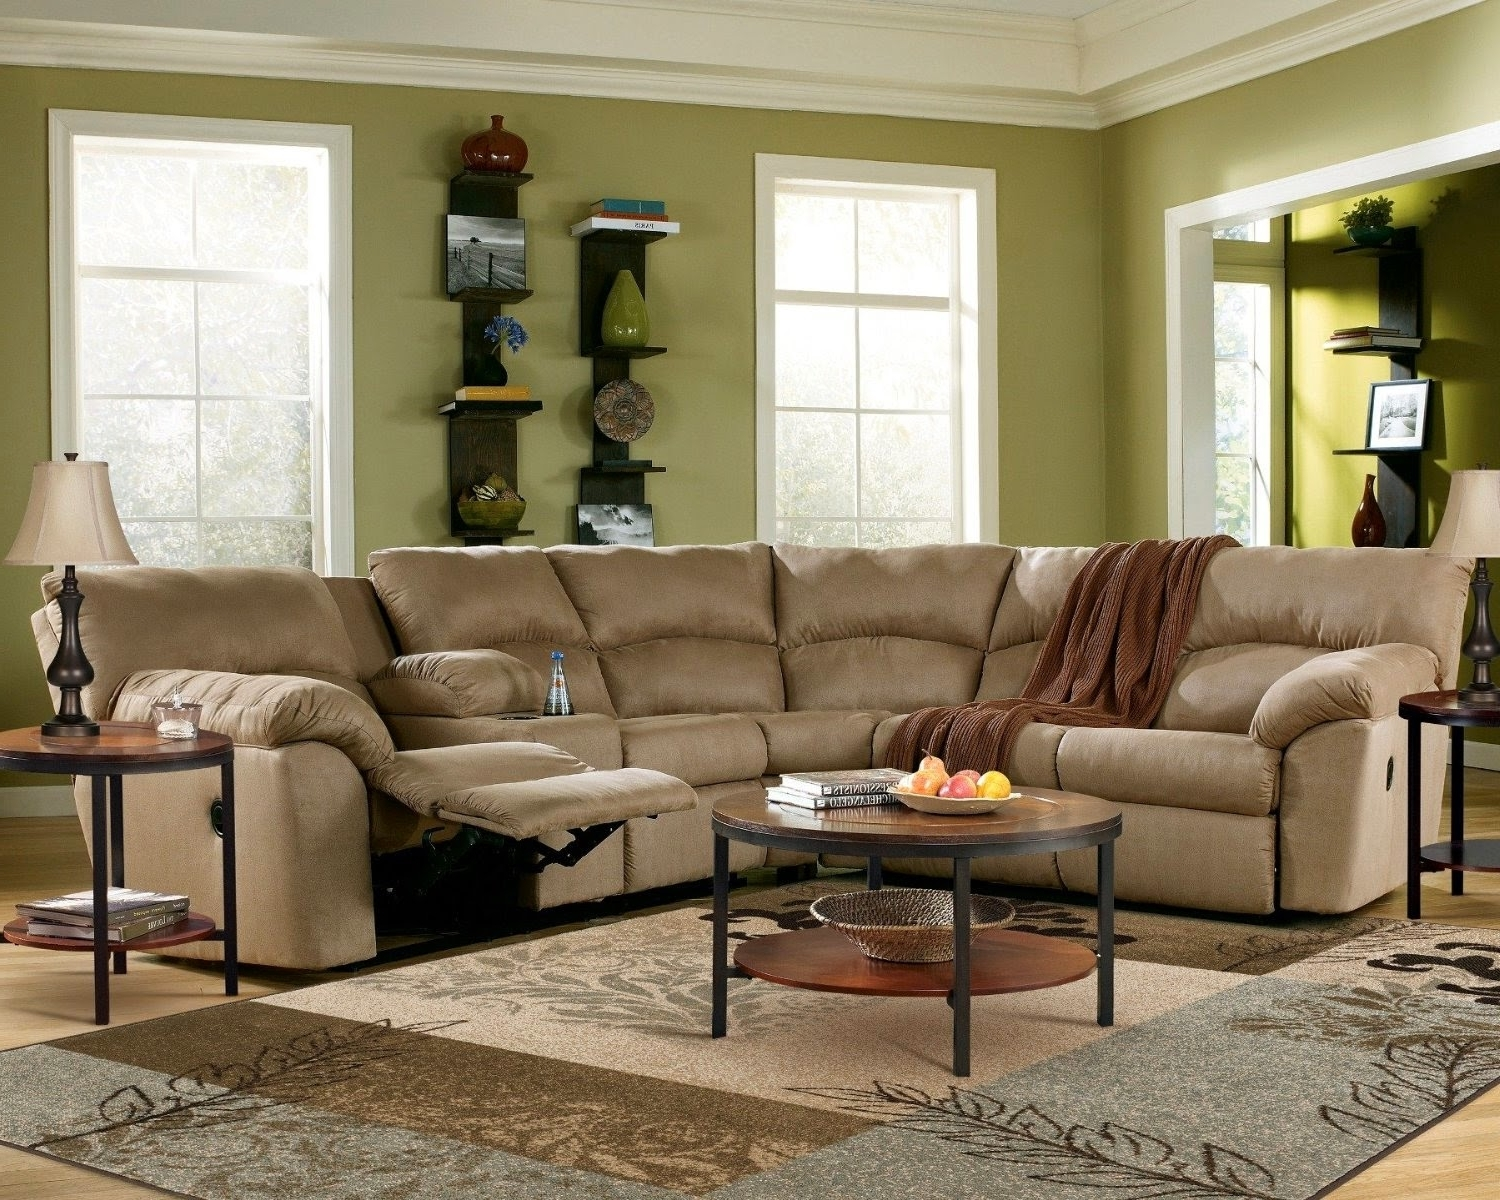 Small Contemporary Recliners Curved Sectional Sofa With Recliners With Newest Curved Sectional Sofas With Recliner (View 6 of 20)